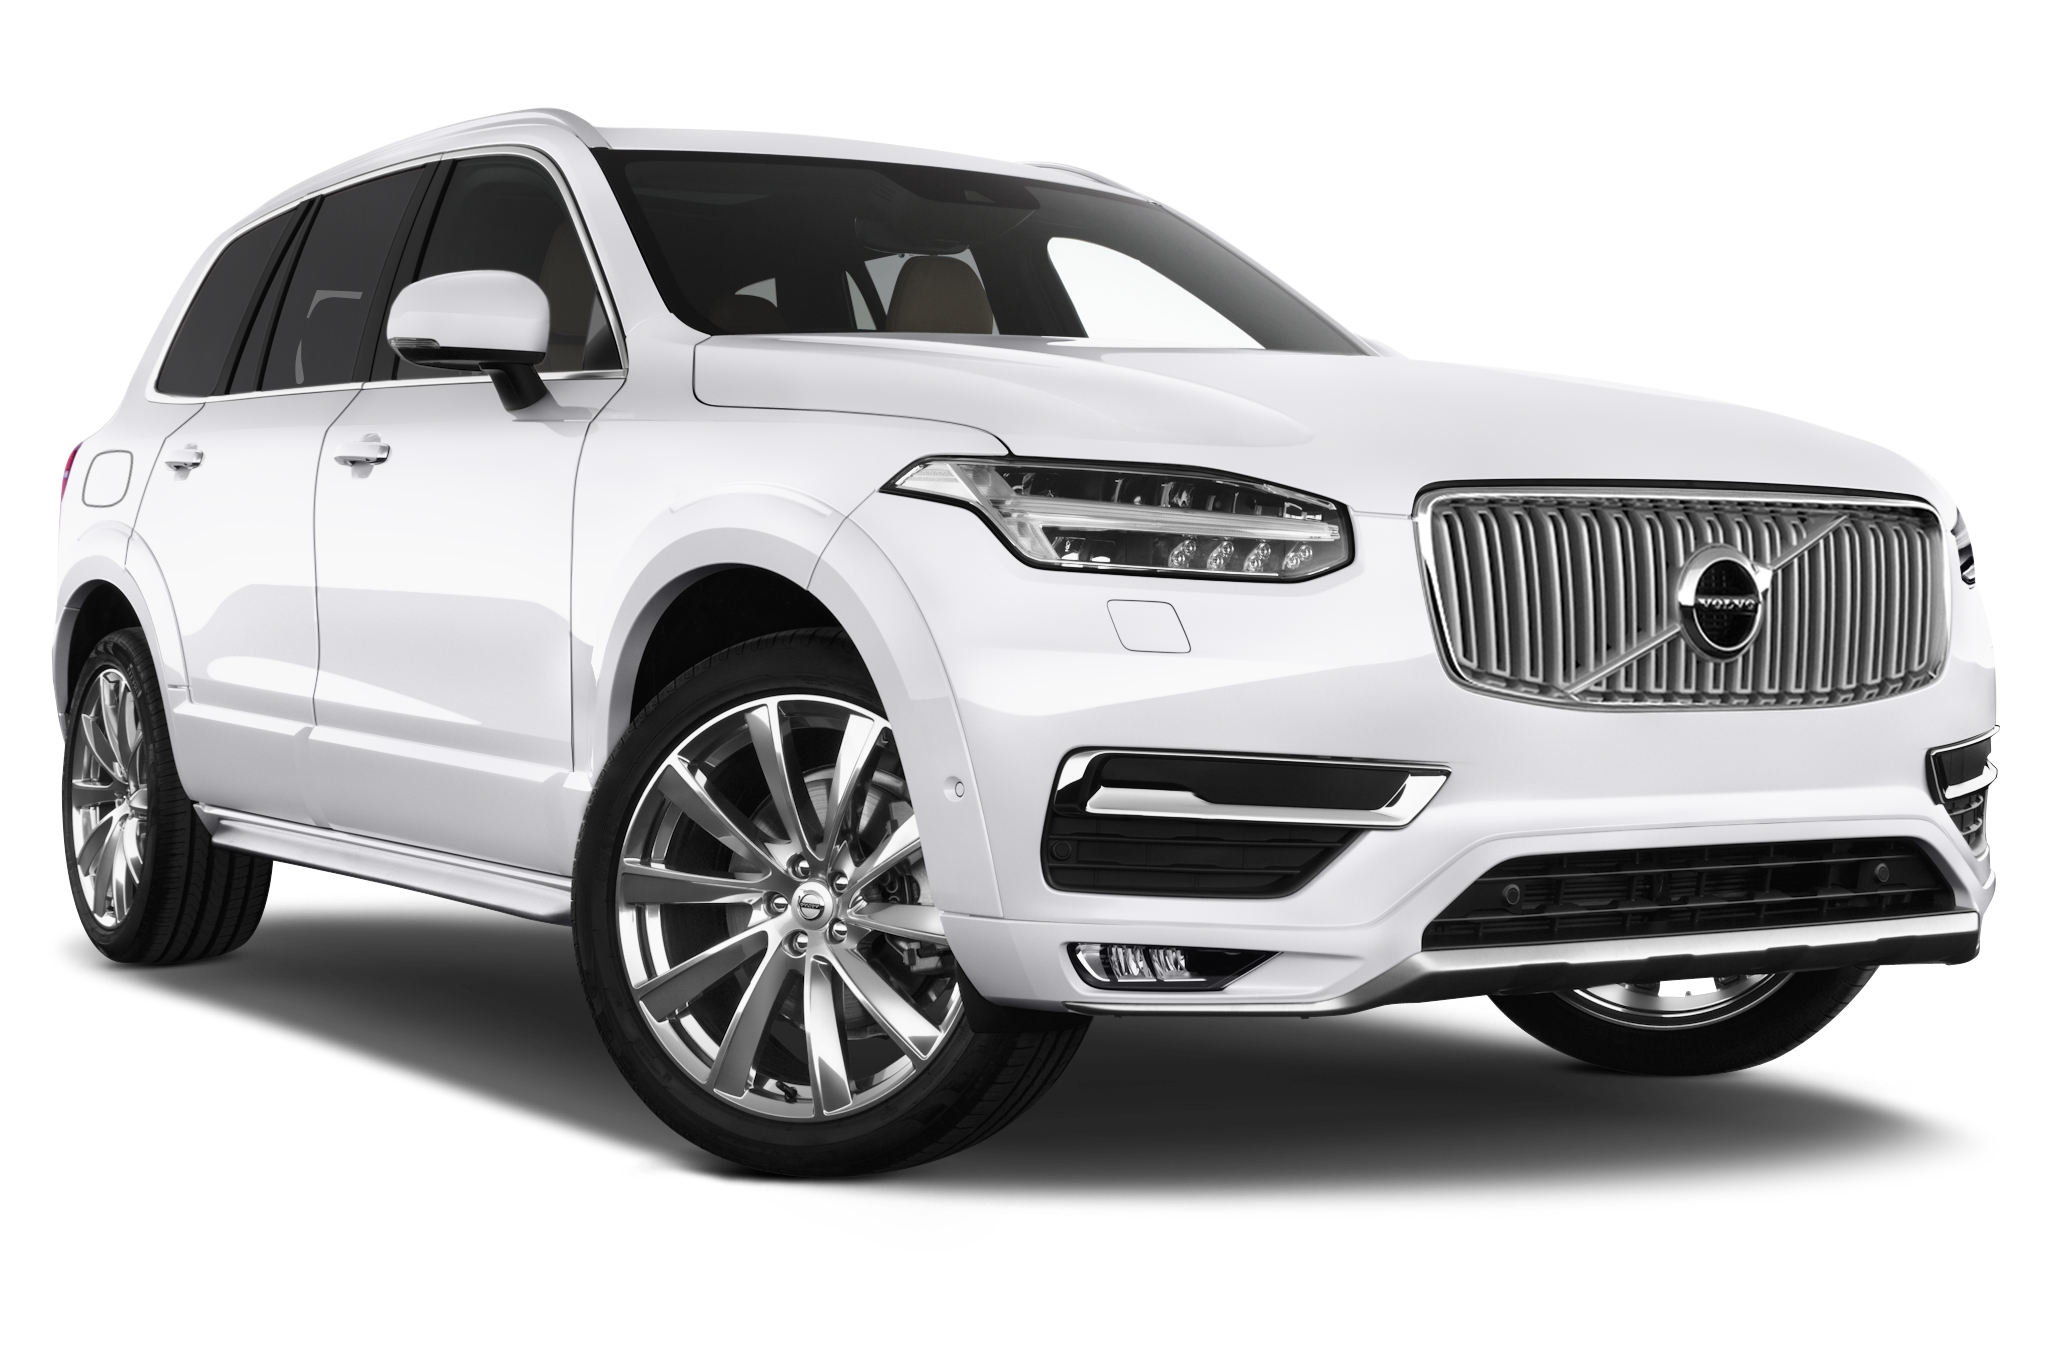 Volvo XC90 company car front view